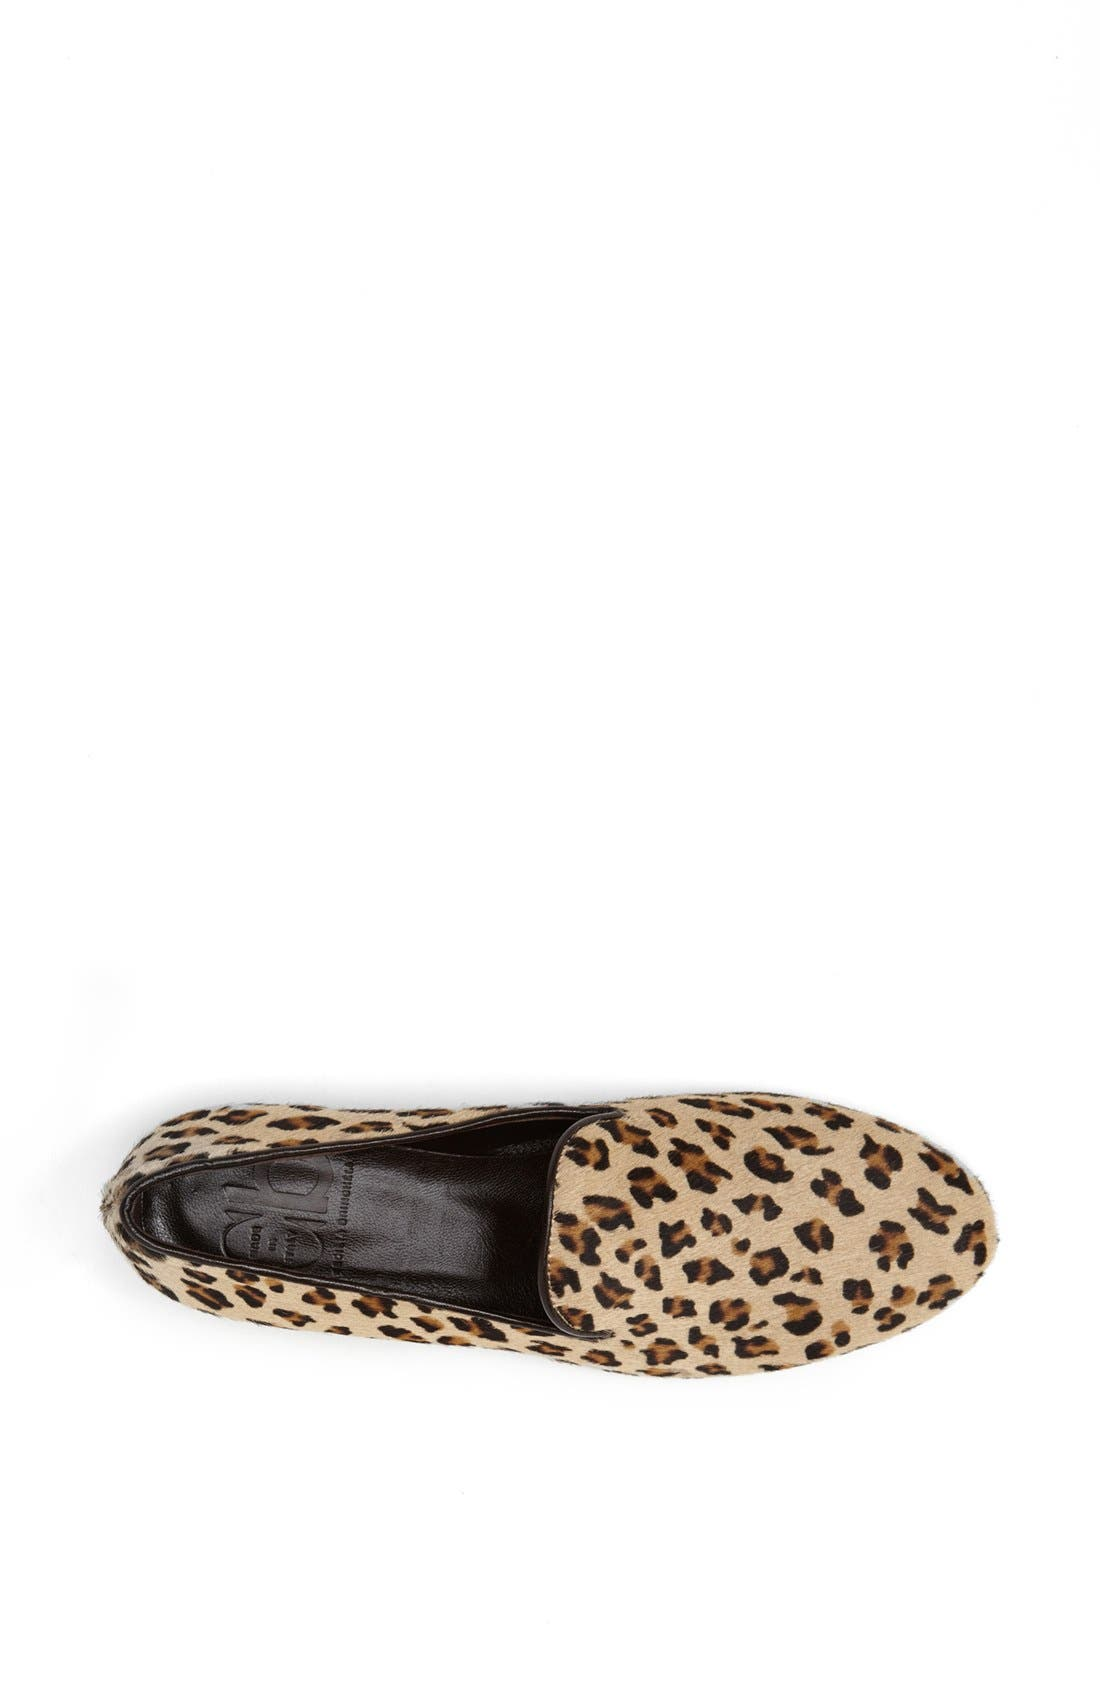 Alternate Image 3  - CB Made in Italy Leopard Print Slipper Flat